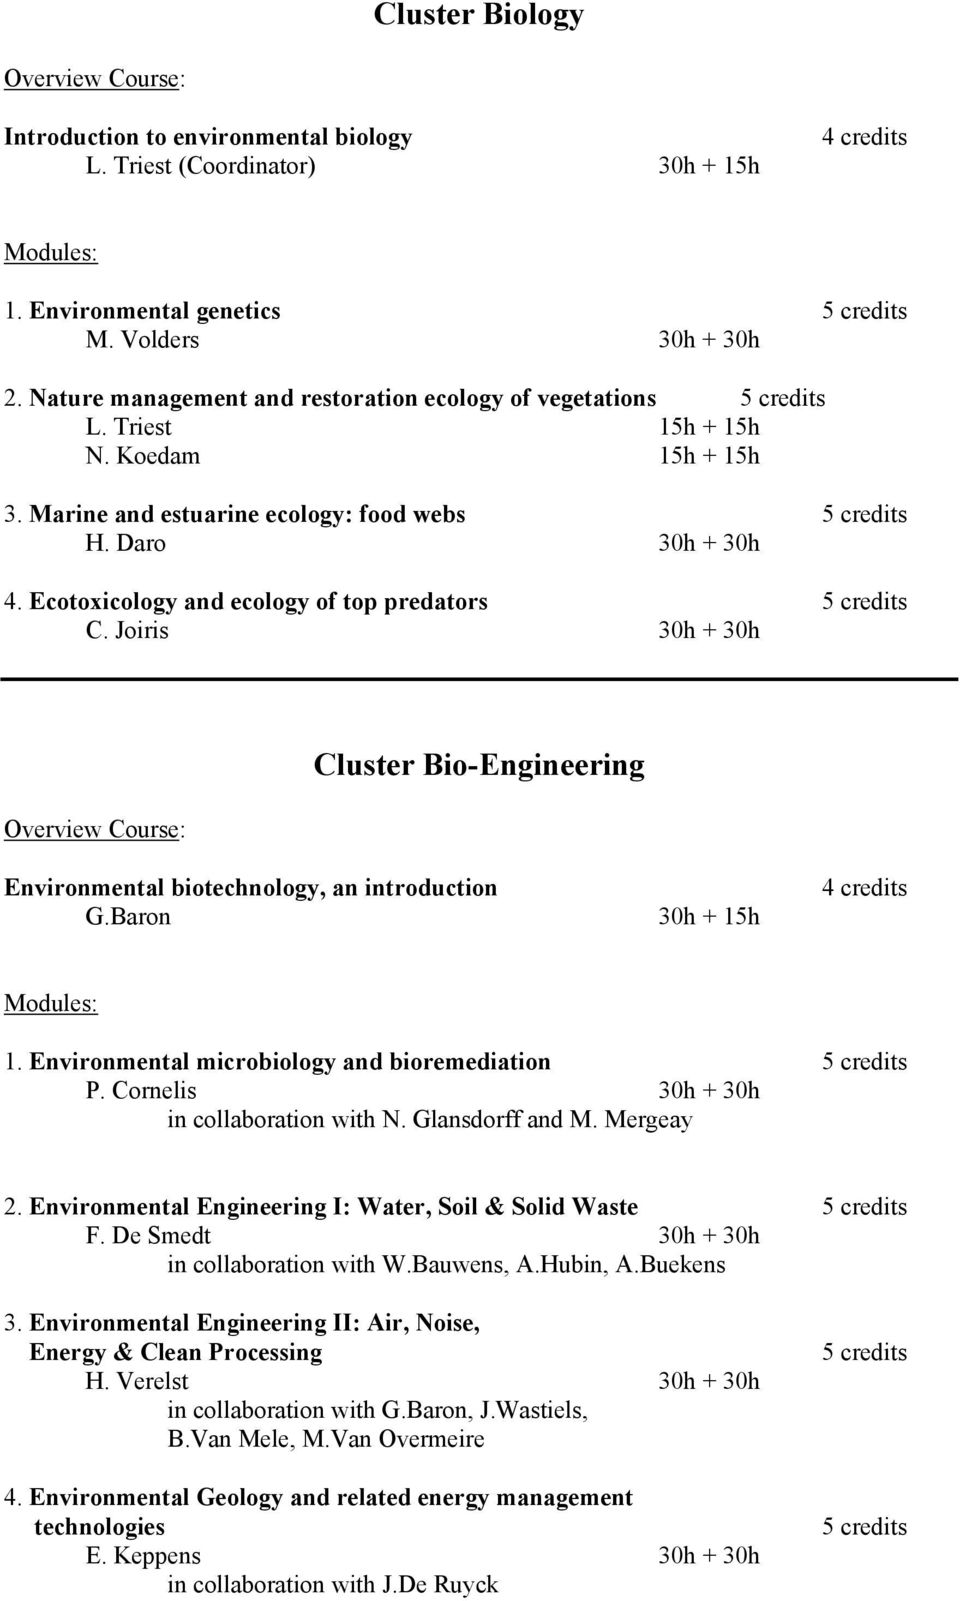 Ecotoxicology and ecology of top predators 5 credits C. Joiris 30h + 30h Overview Course: Cluster Bio-Engineering Environmental biotechnology, an introduction G.Baron 30h + 15h 4 credits Modules: 1.